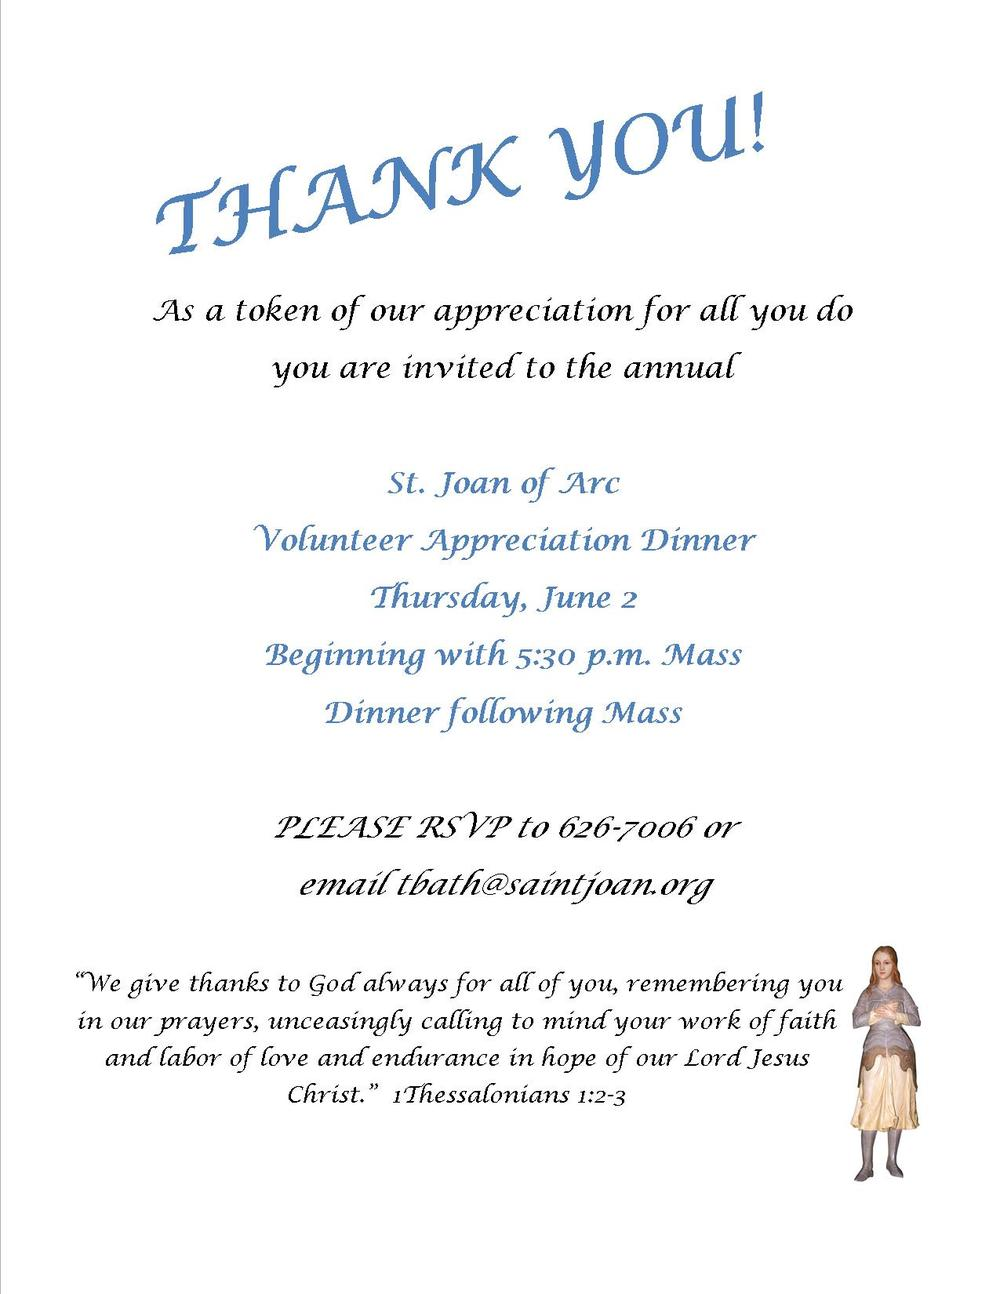 Volunteer Appreciation Dinner Saint Joan of Arc Catholic Church